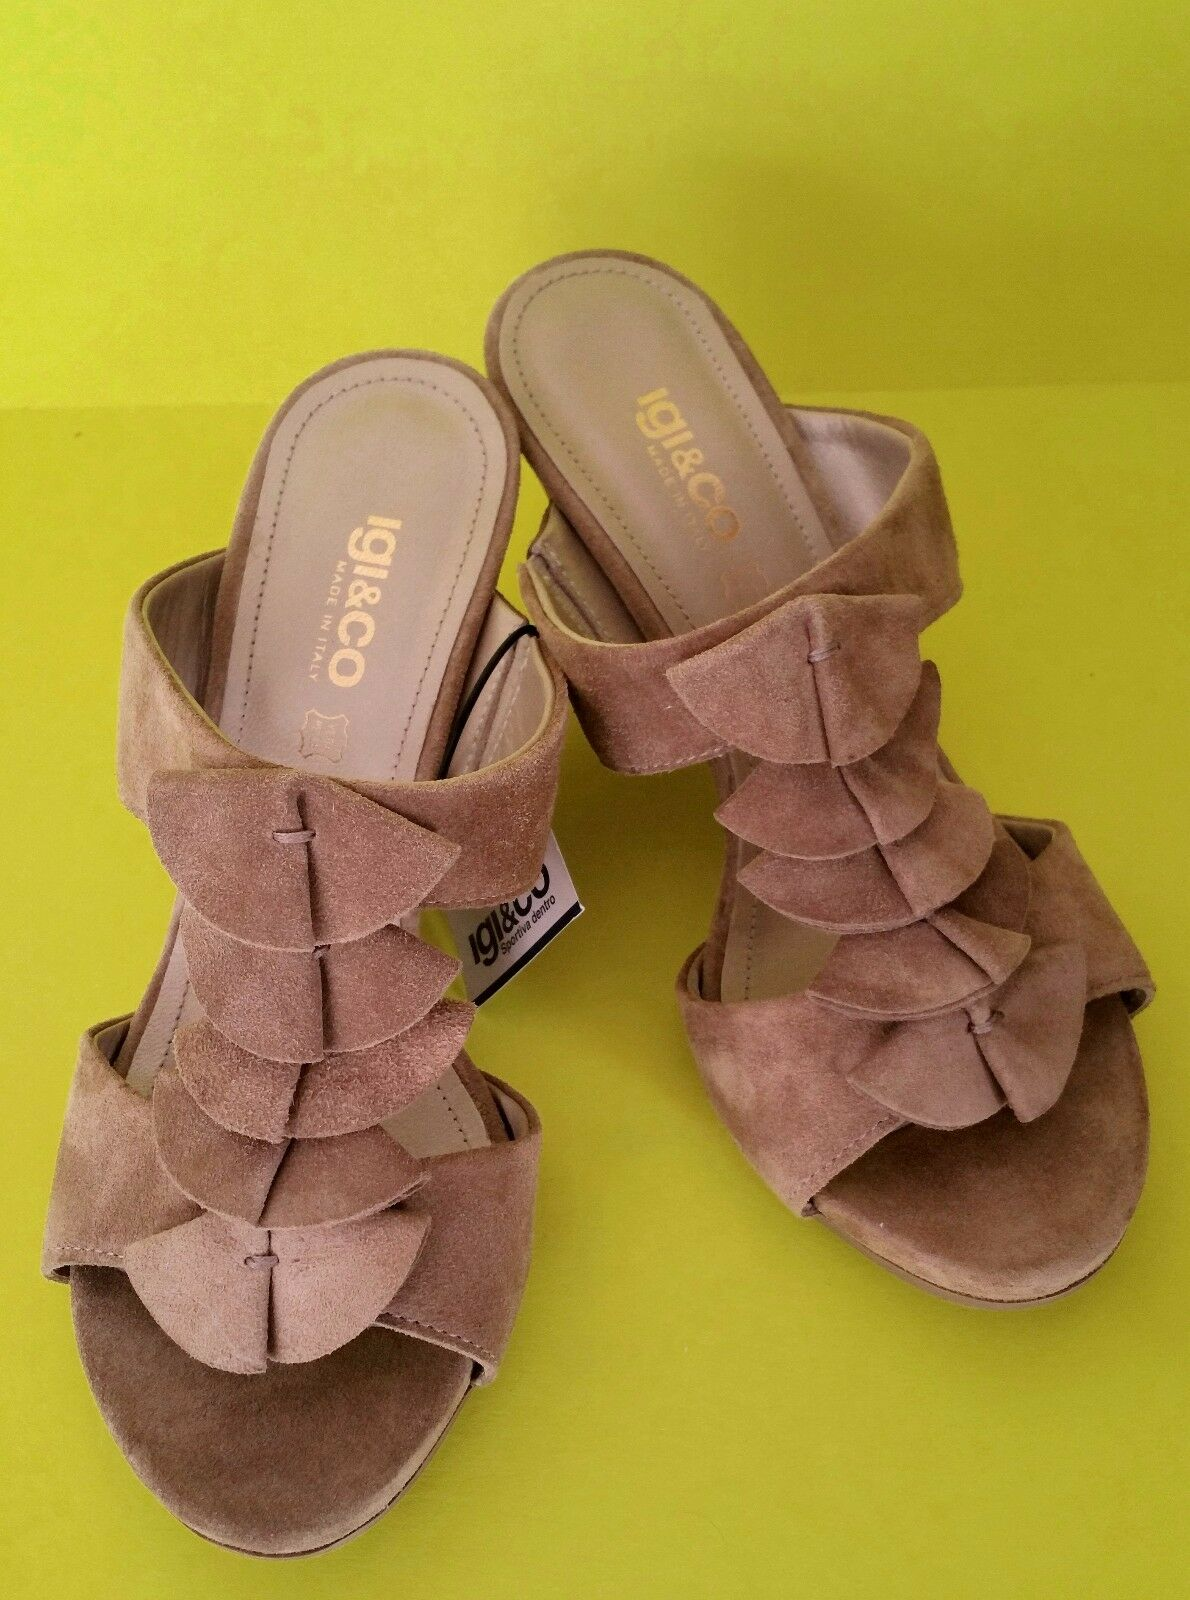 IGI & CO kvinna Heel Sandals Wedge Wedge Wedge Flip Flops skor Beige mocka Made in   billig